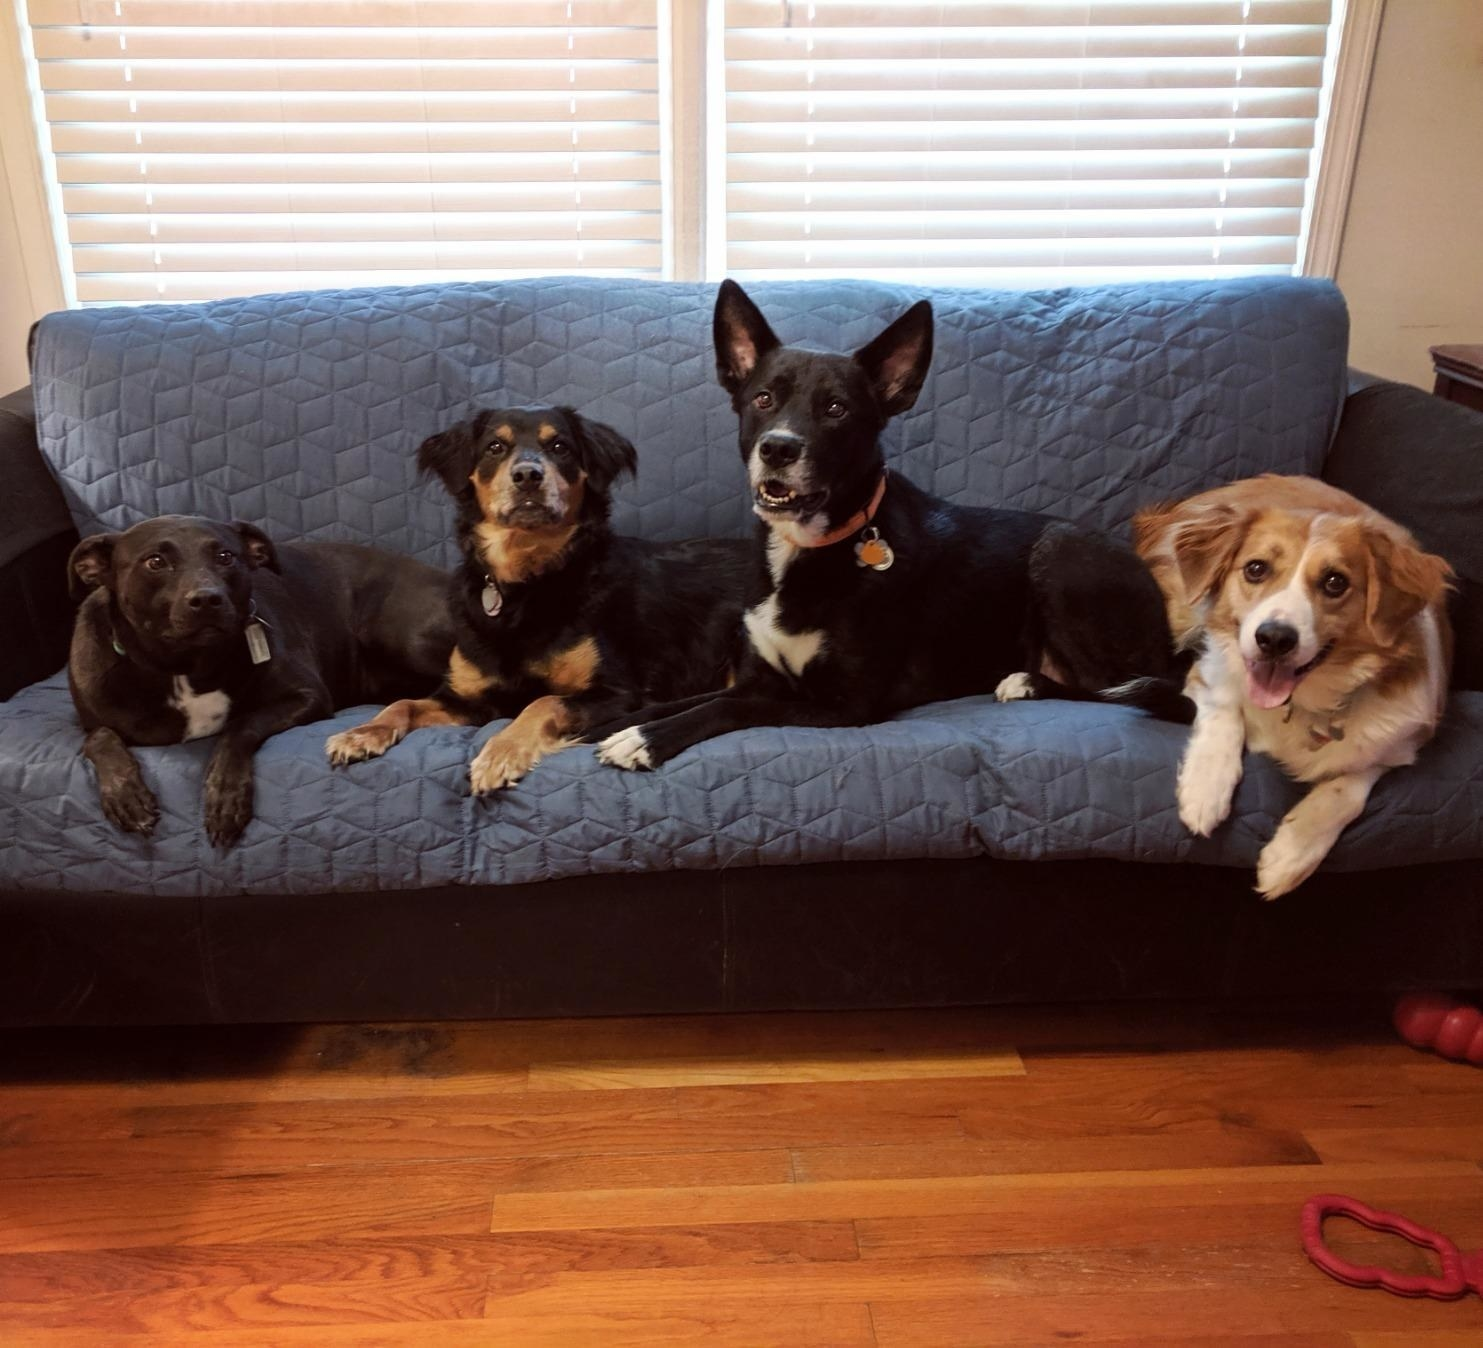 Dogs rest on a couch covered with this product, in blue